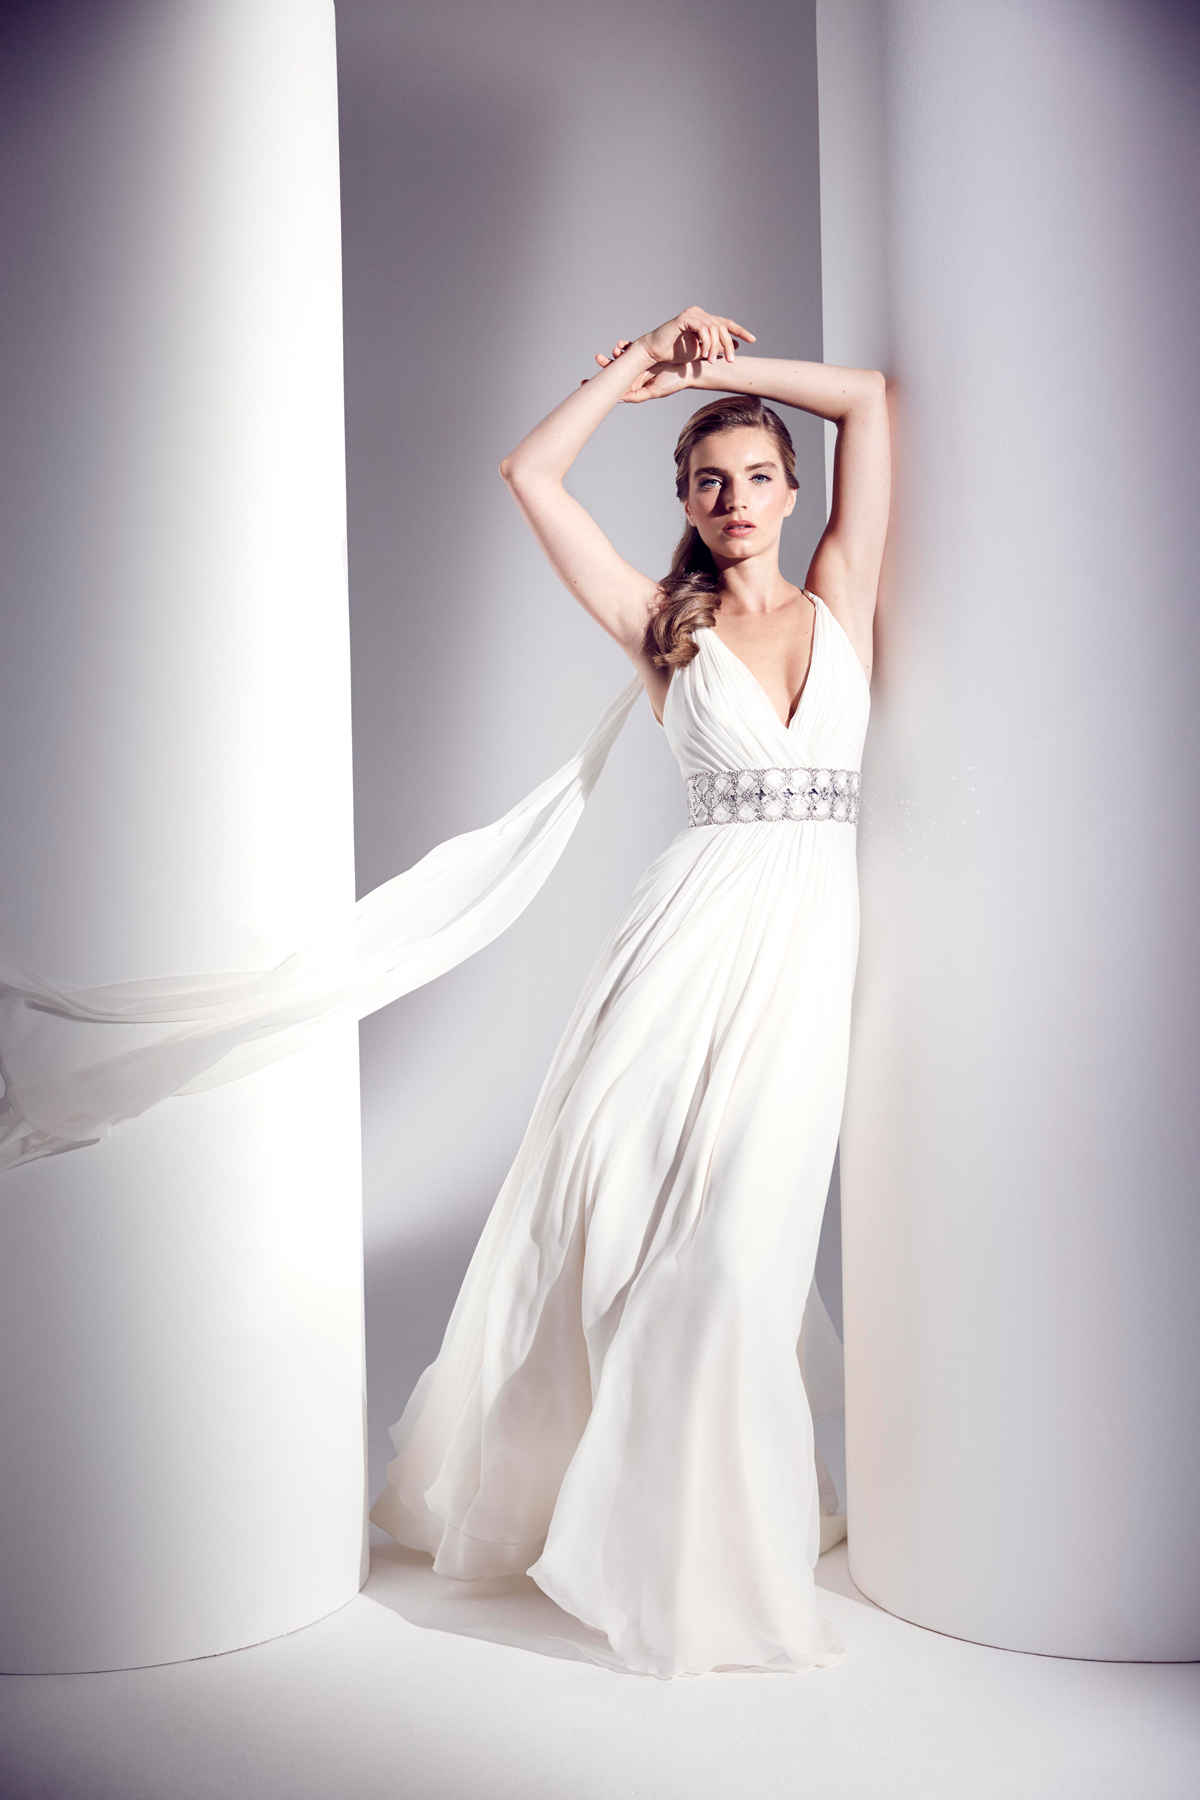 Angelica Jenny Packham collection - Introducing Jenny Packham to all  2019 2020 Brides + Win fe7388133